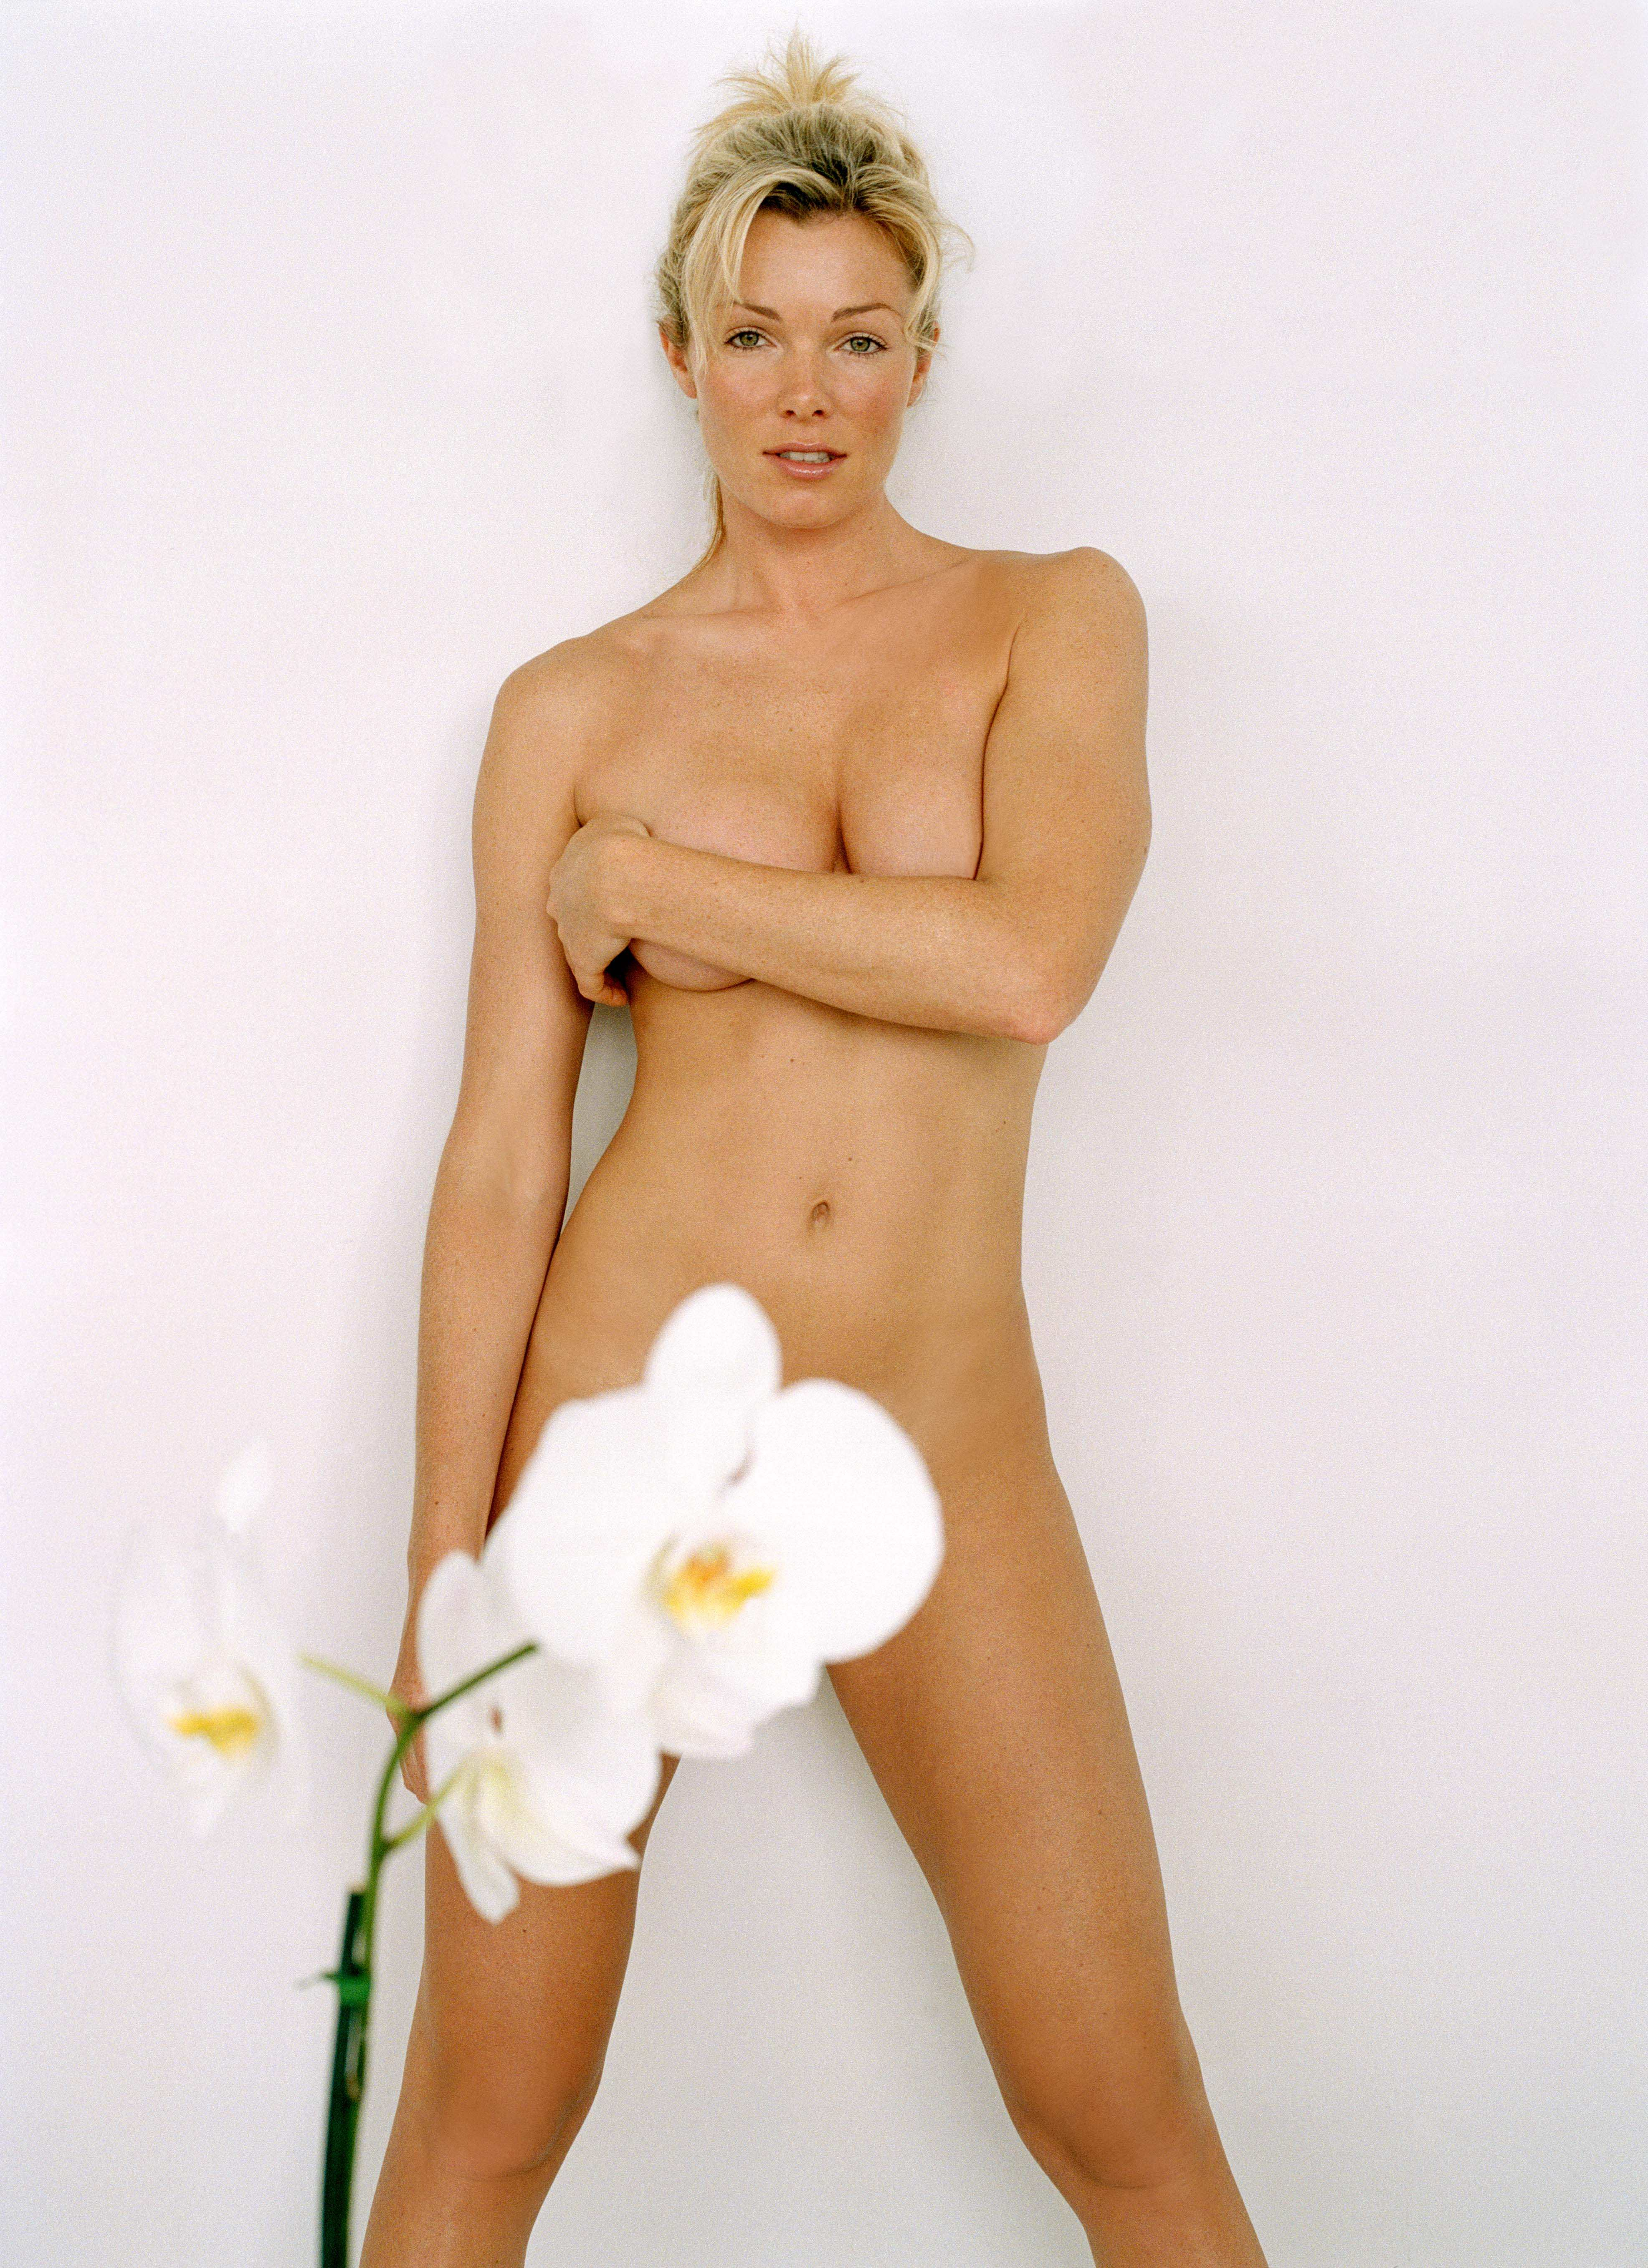 Nell mcandrew's nude photos on beach will make your jaw drop celebs unmasked